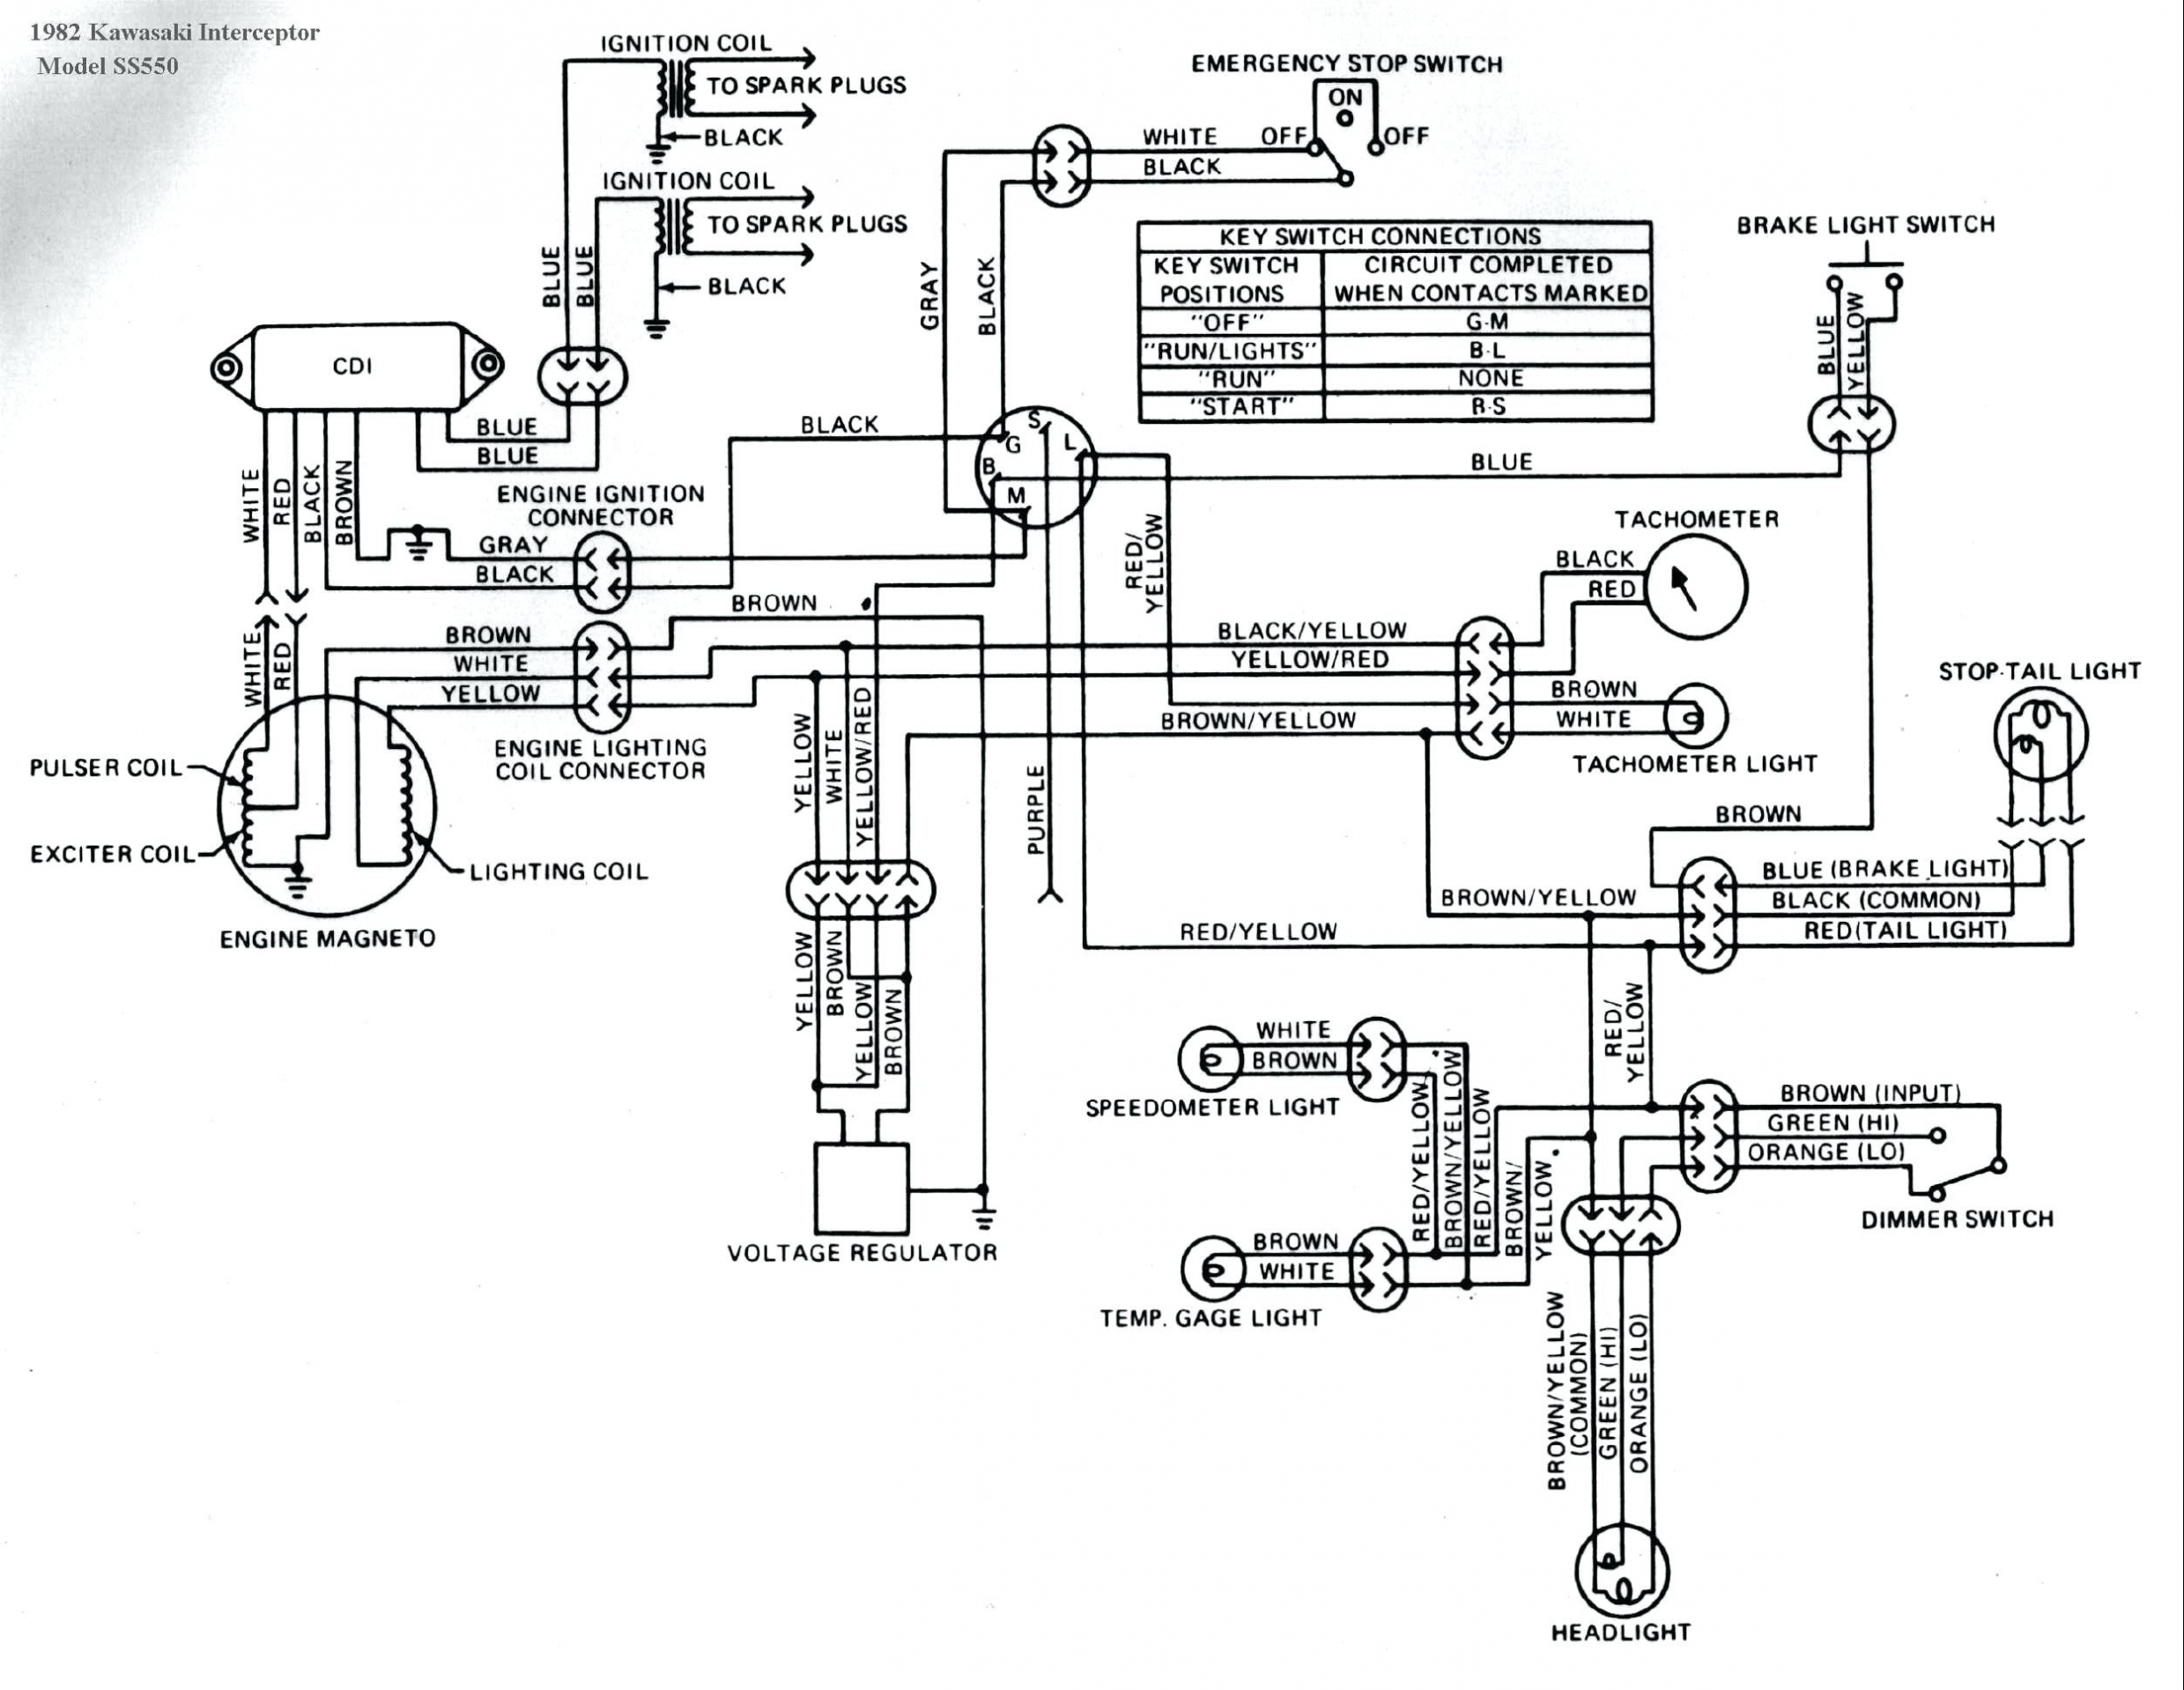 110 Wiring Diagram | Wiring Library - 220 To 110 Wiring Diagram